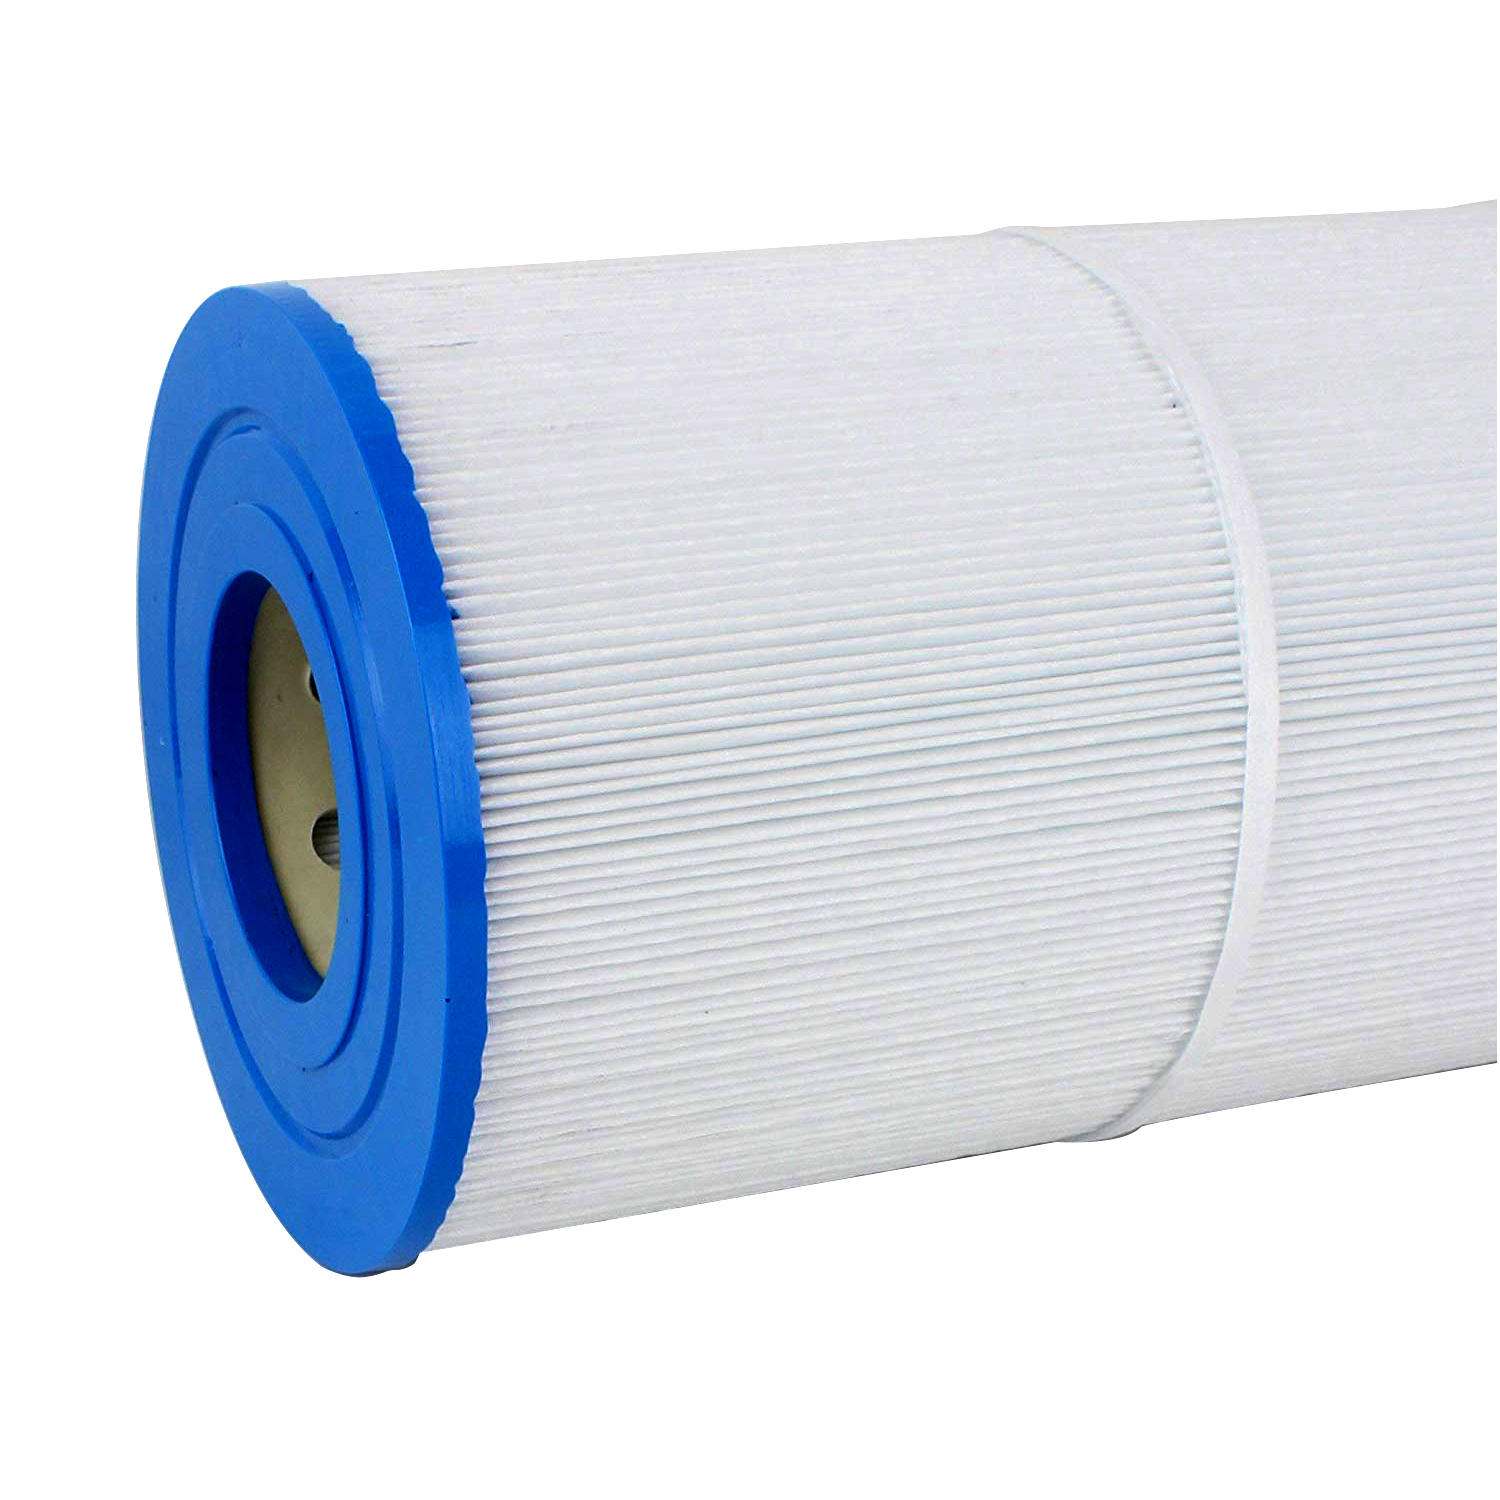 Low MOQ for Industrial Water Filter System -